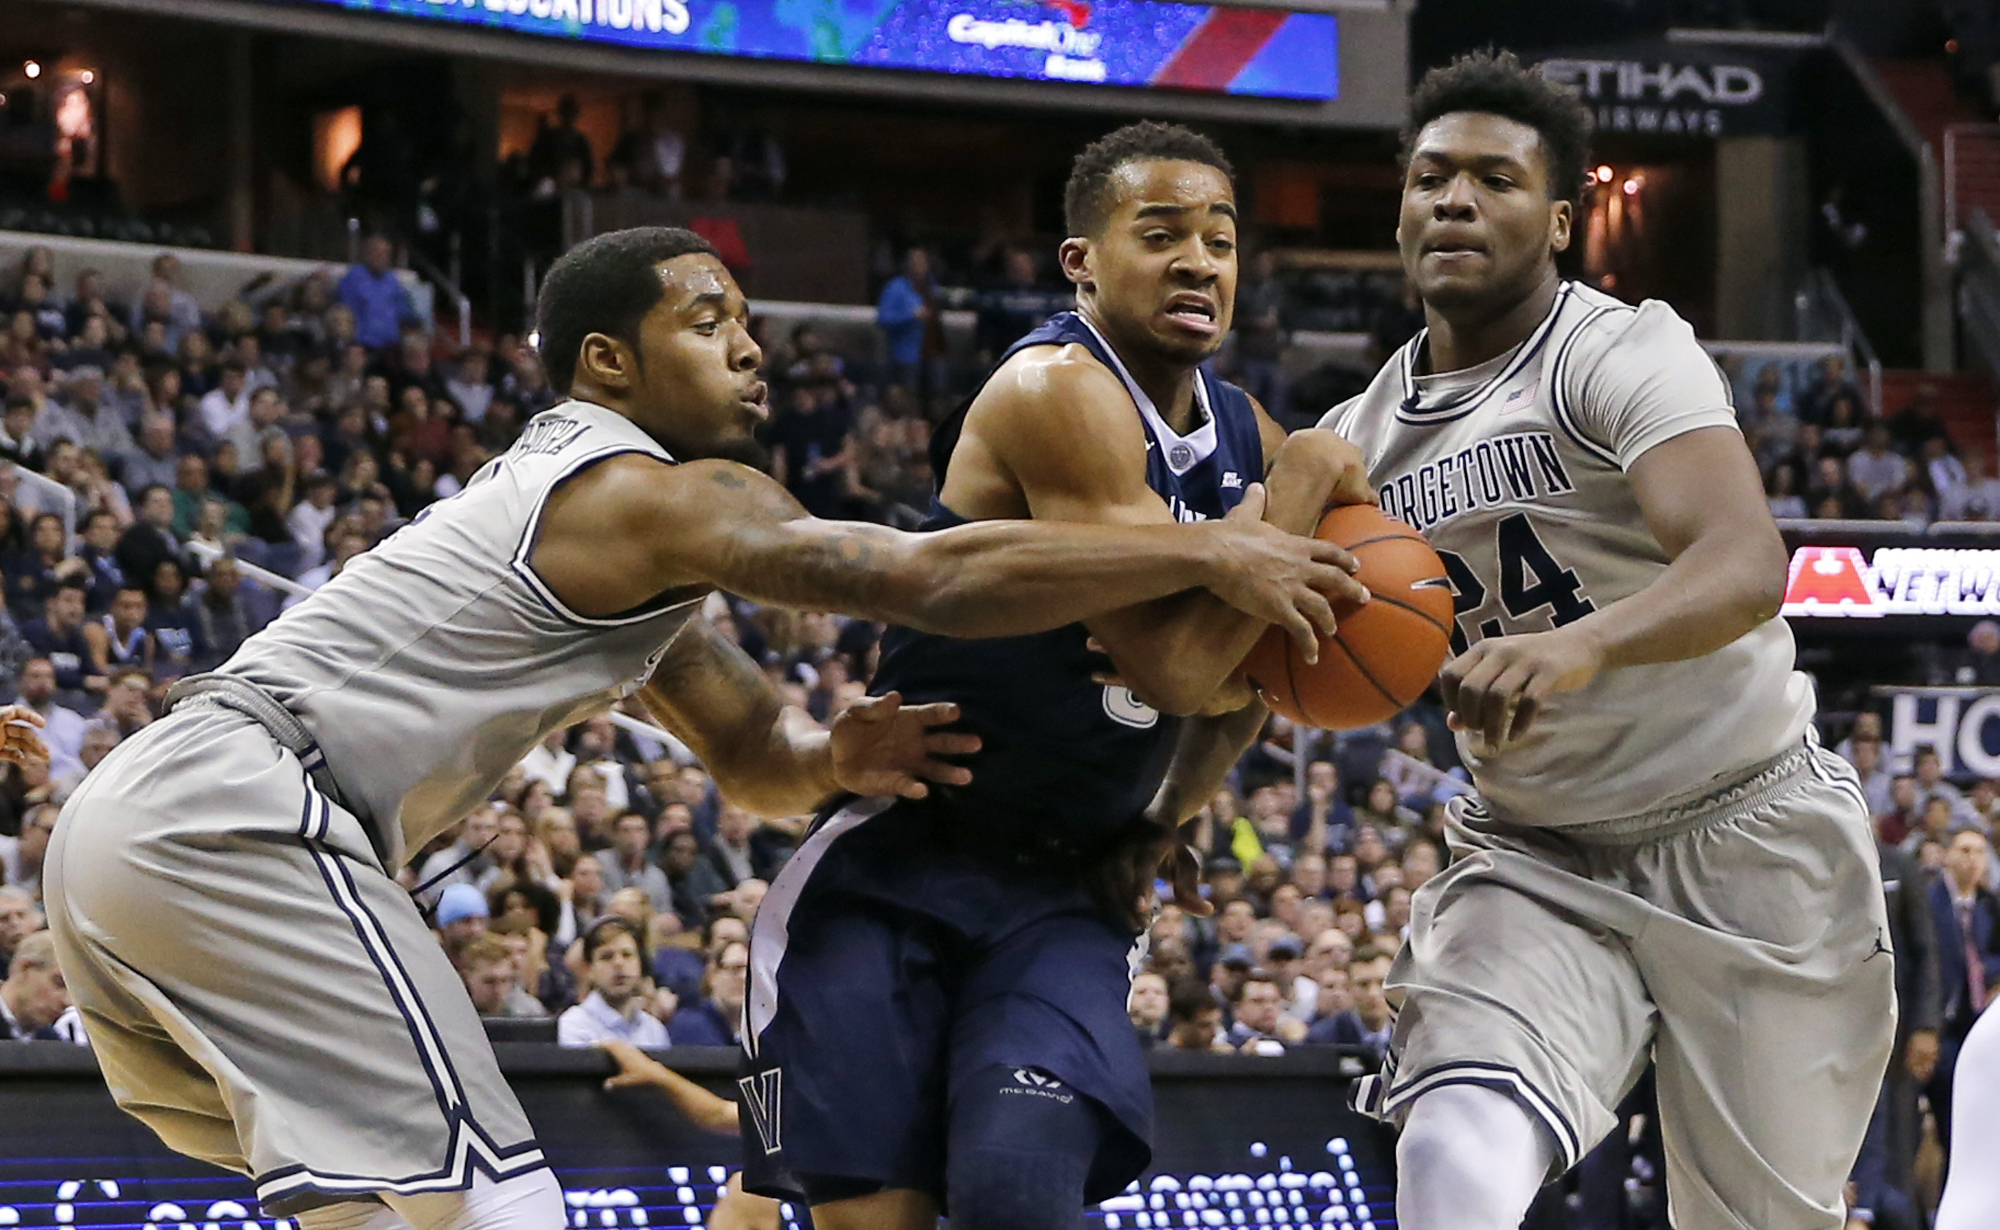 Villanova guard Phil Booth (5) tries to get past Georgetown guard D'Vauntes Smith-Rivera, left, and forward Marcus Derrickson during the first half of an NCAA college basketball game, Saturday, Jan. 16, 2016, in Washington. (AP Photo/Alex Brandon)